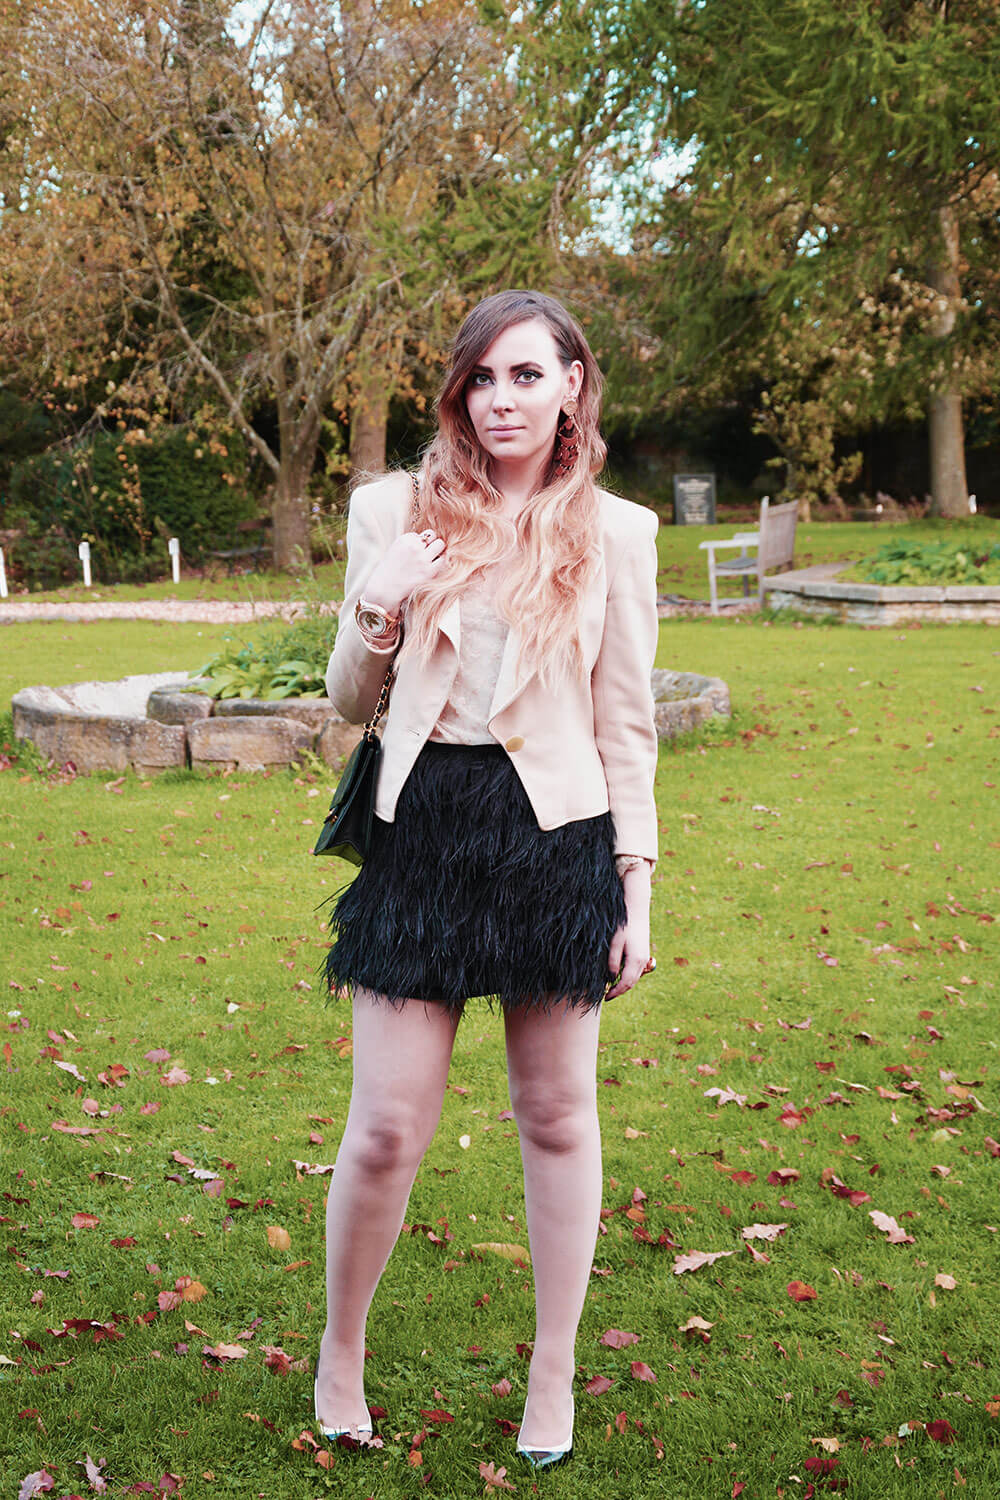 Edita in Micheal Kors Ostrich feather skirt, Chanel bag, Dior jacket, BCBG pumps and Ralph Lauren lace top 1